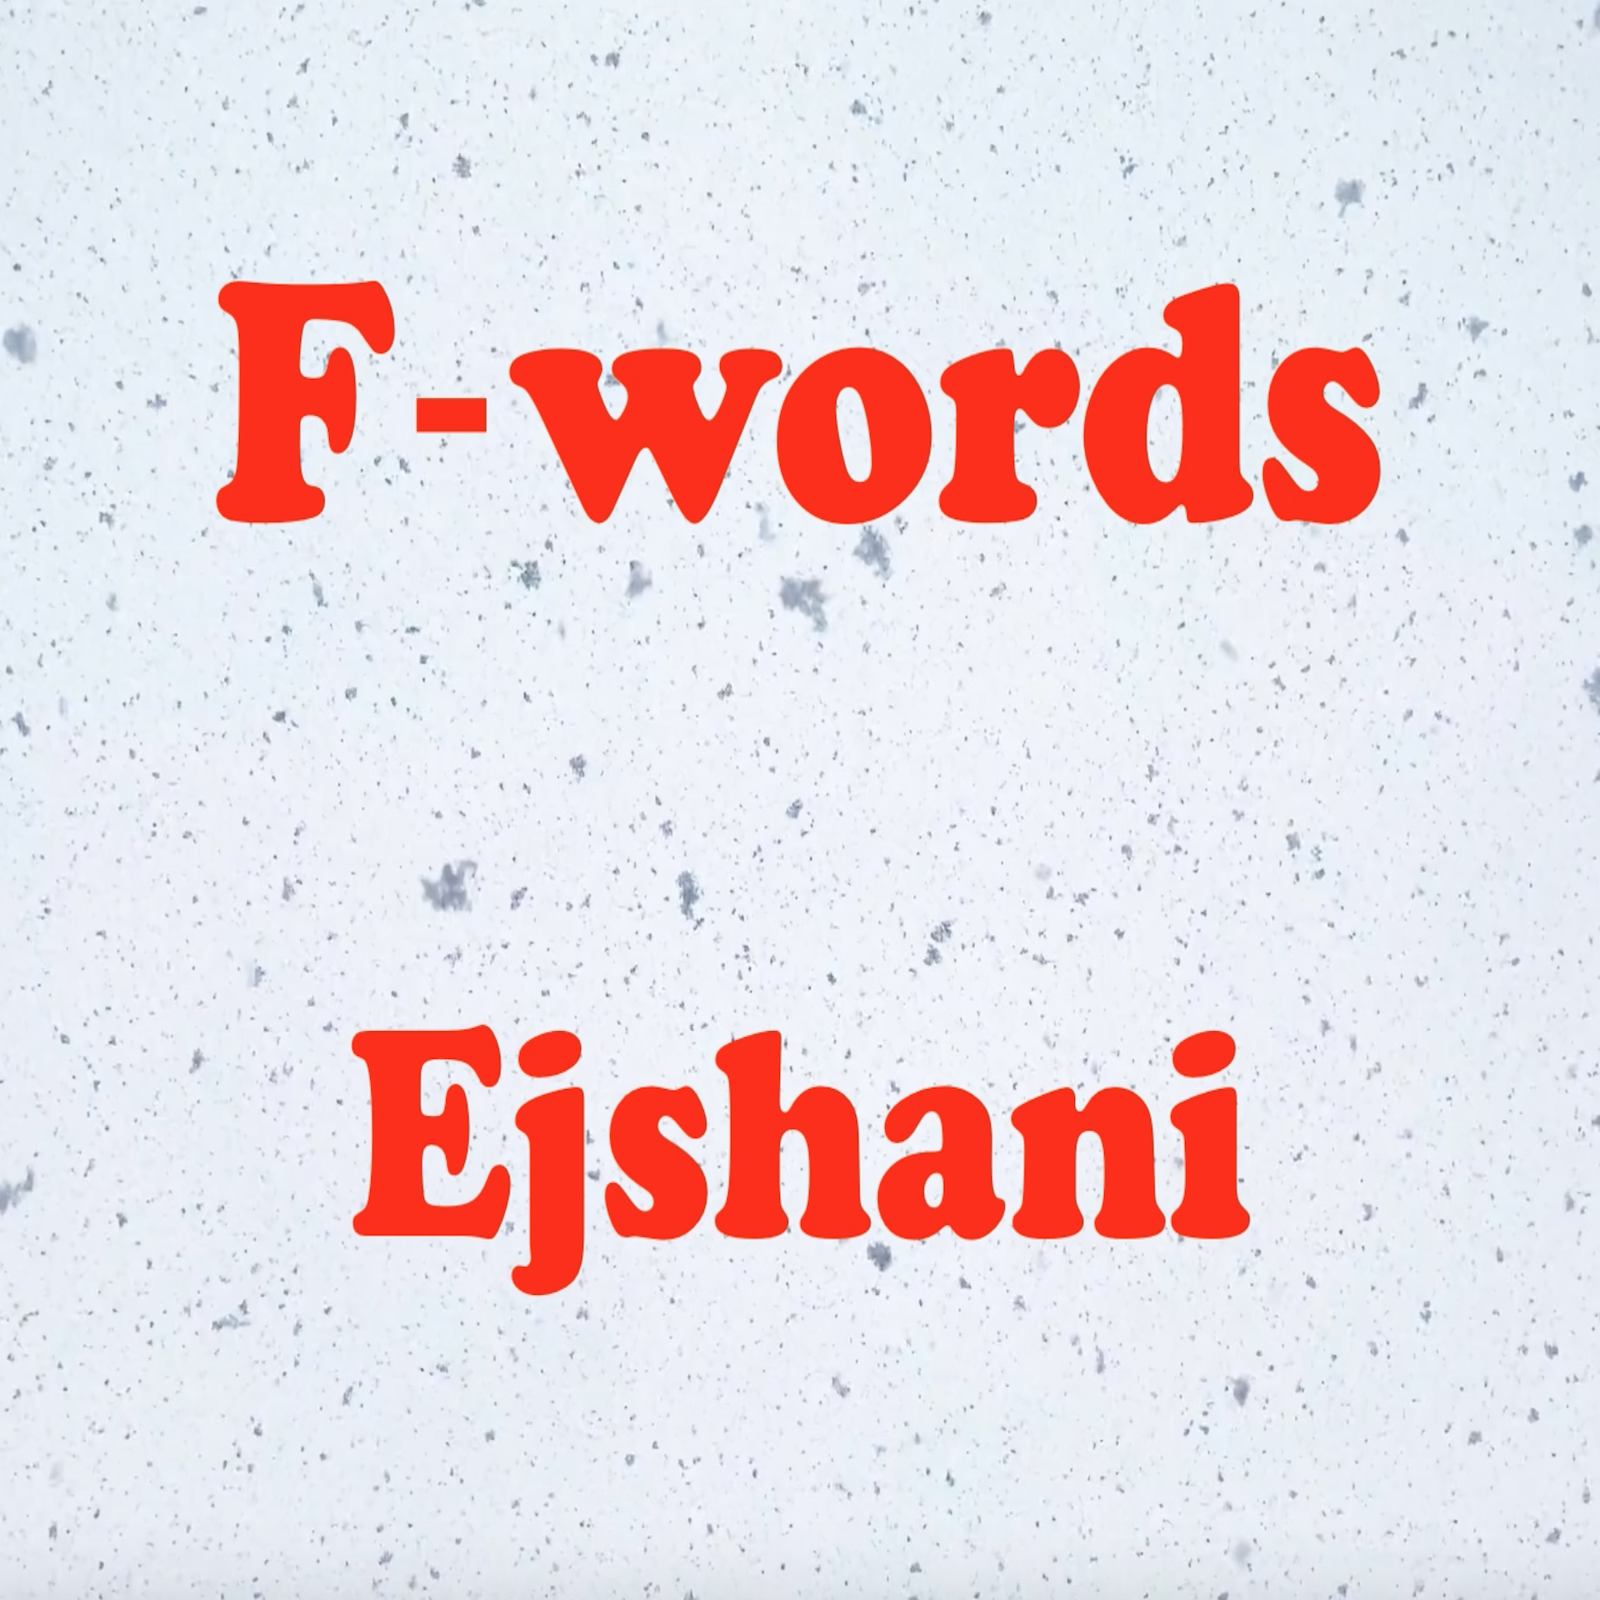 """Ejshani unveils highly anticipated new single, """"F-words."""""""